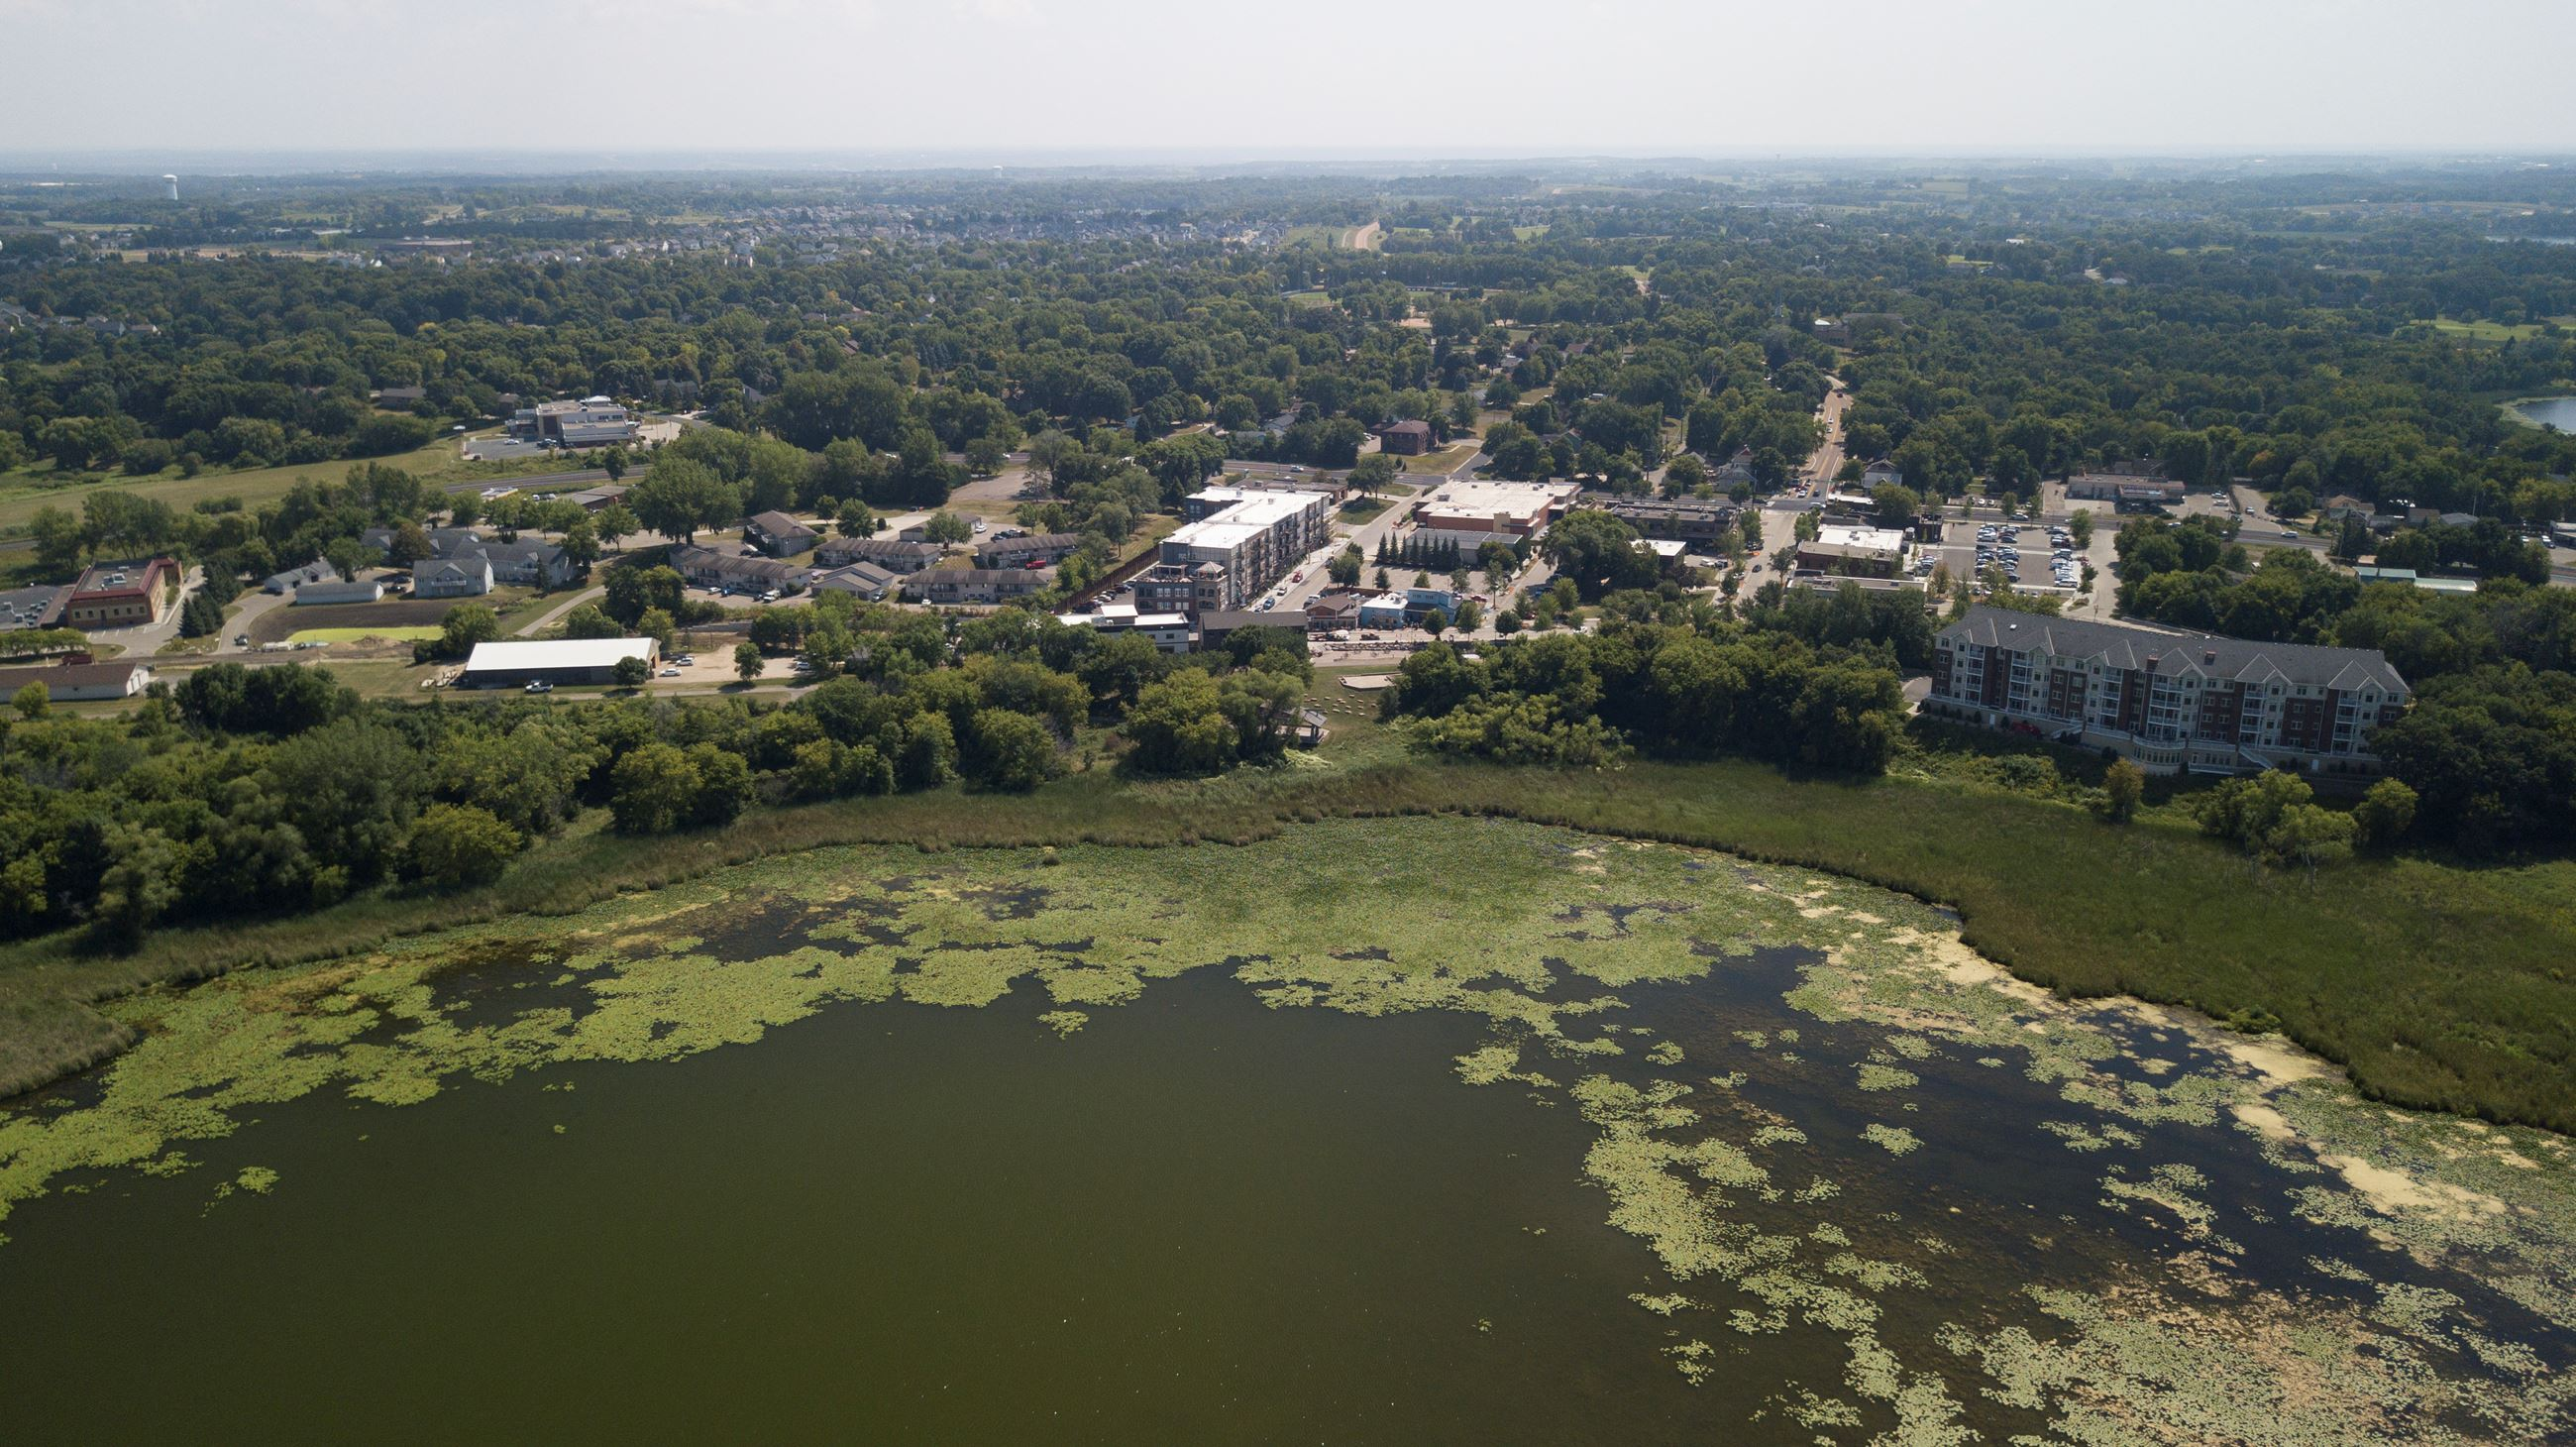 aerial view of downtown Victoria, MN and Stieger Lake